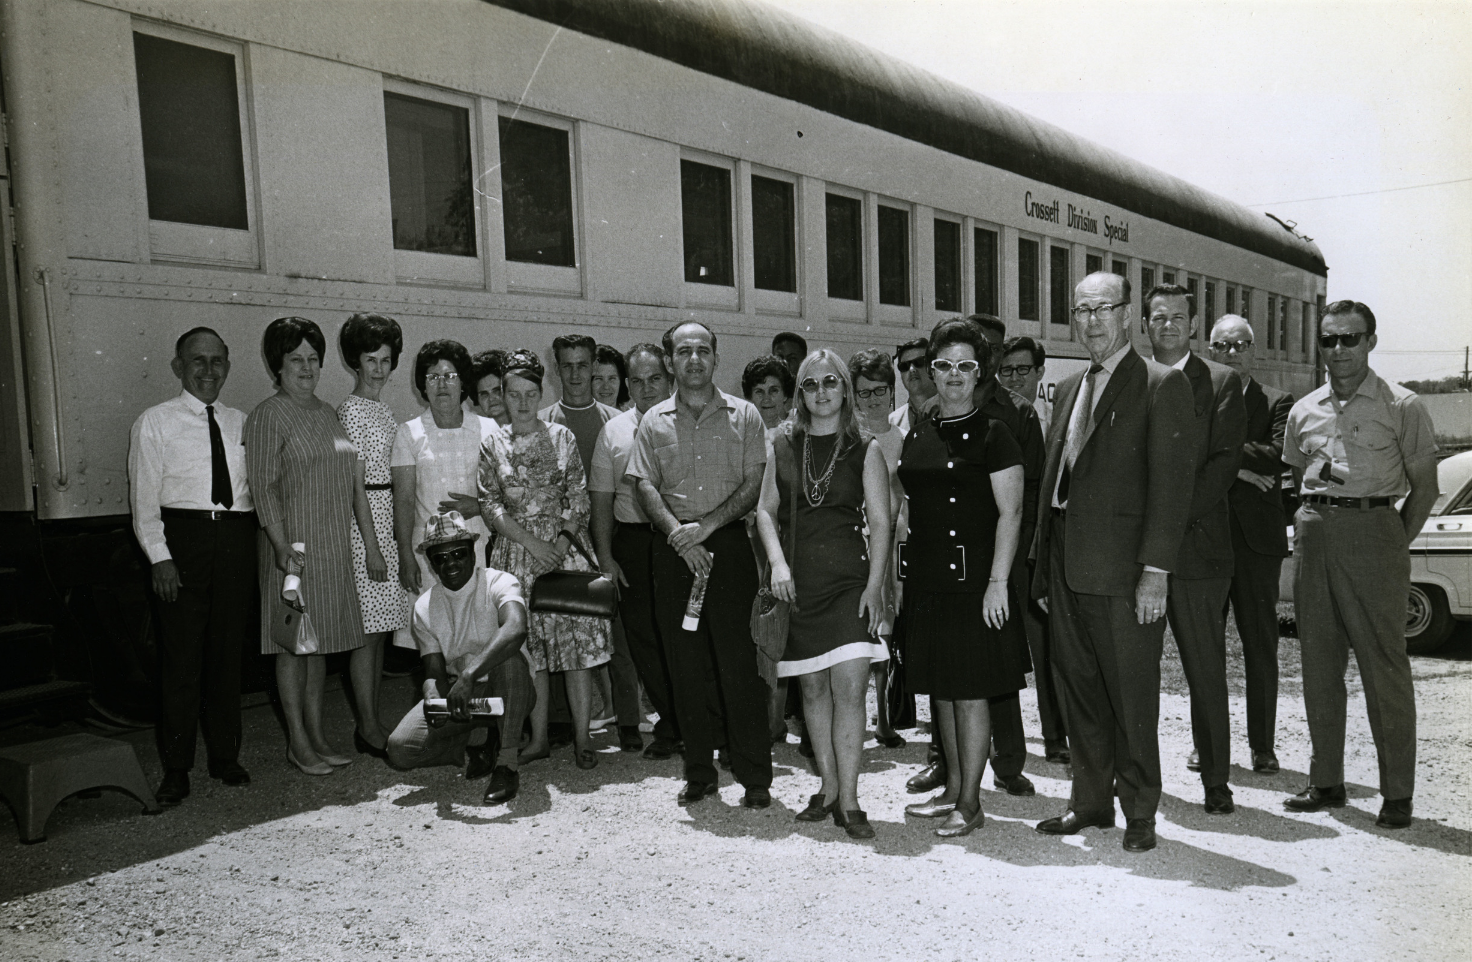 An image of Ross & Wallace Paper Products, Inc. staff on a rail journey to a paper mill.  Circa 1974